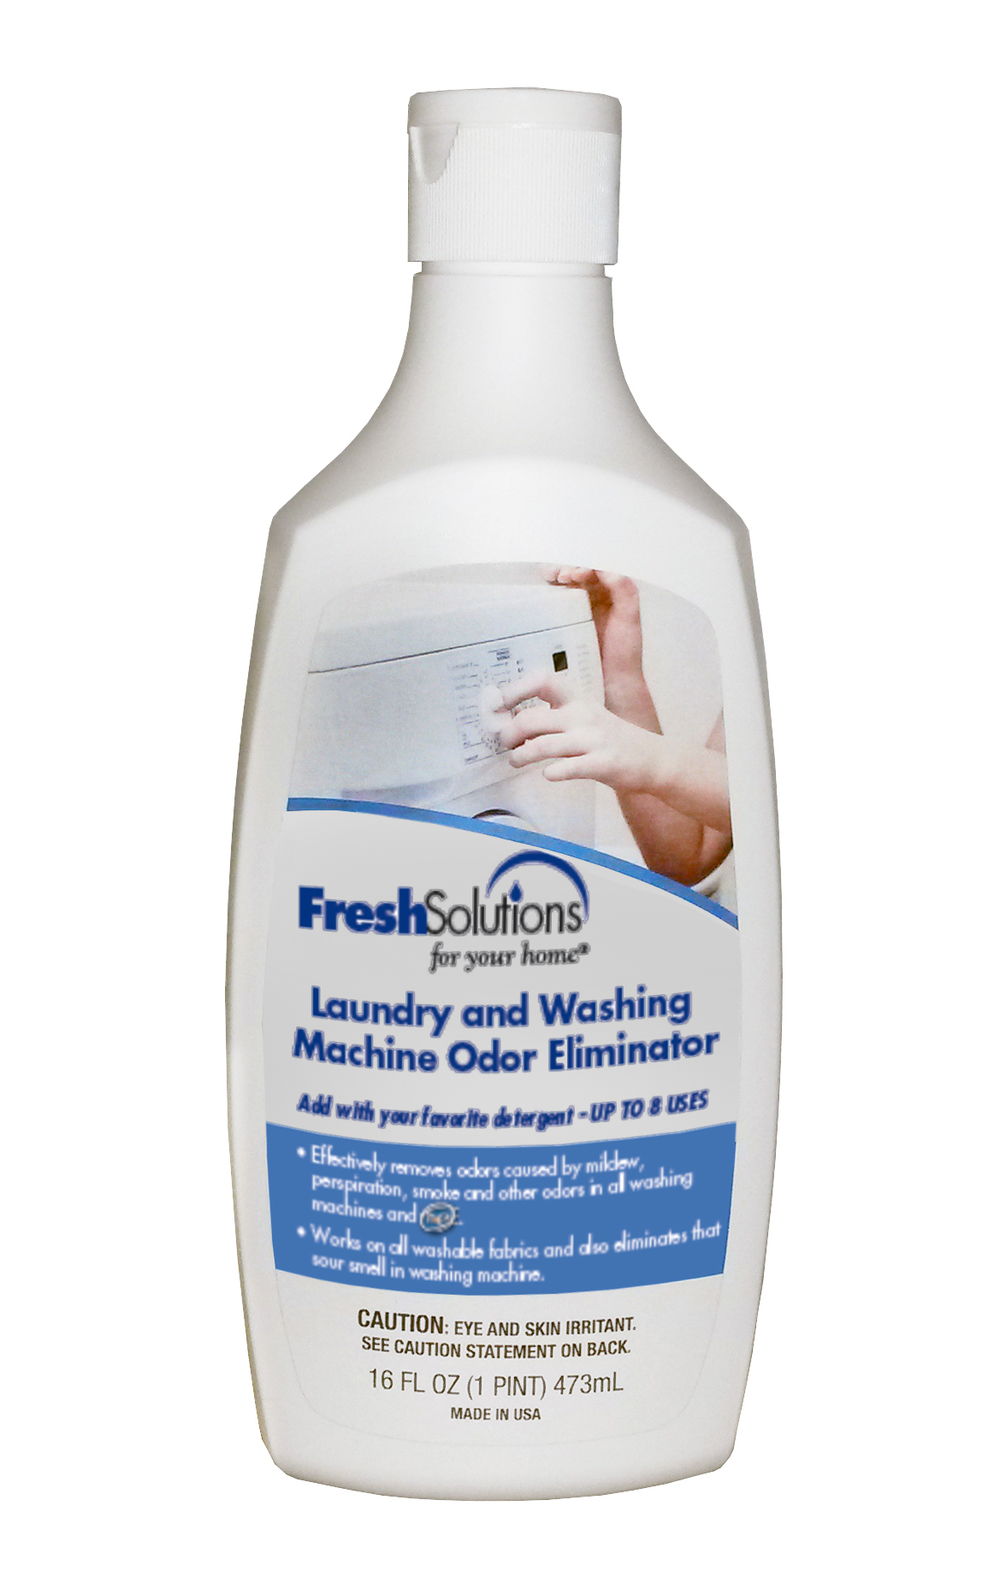 Laundry and Washing Machine Odor Eliminator